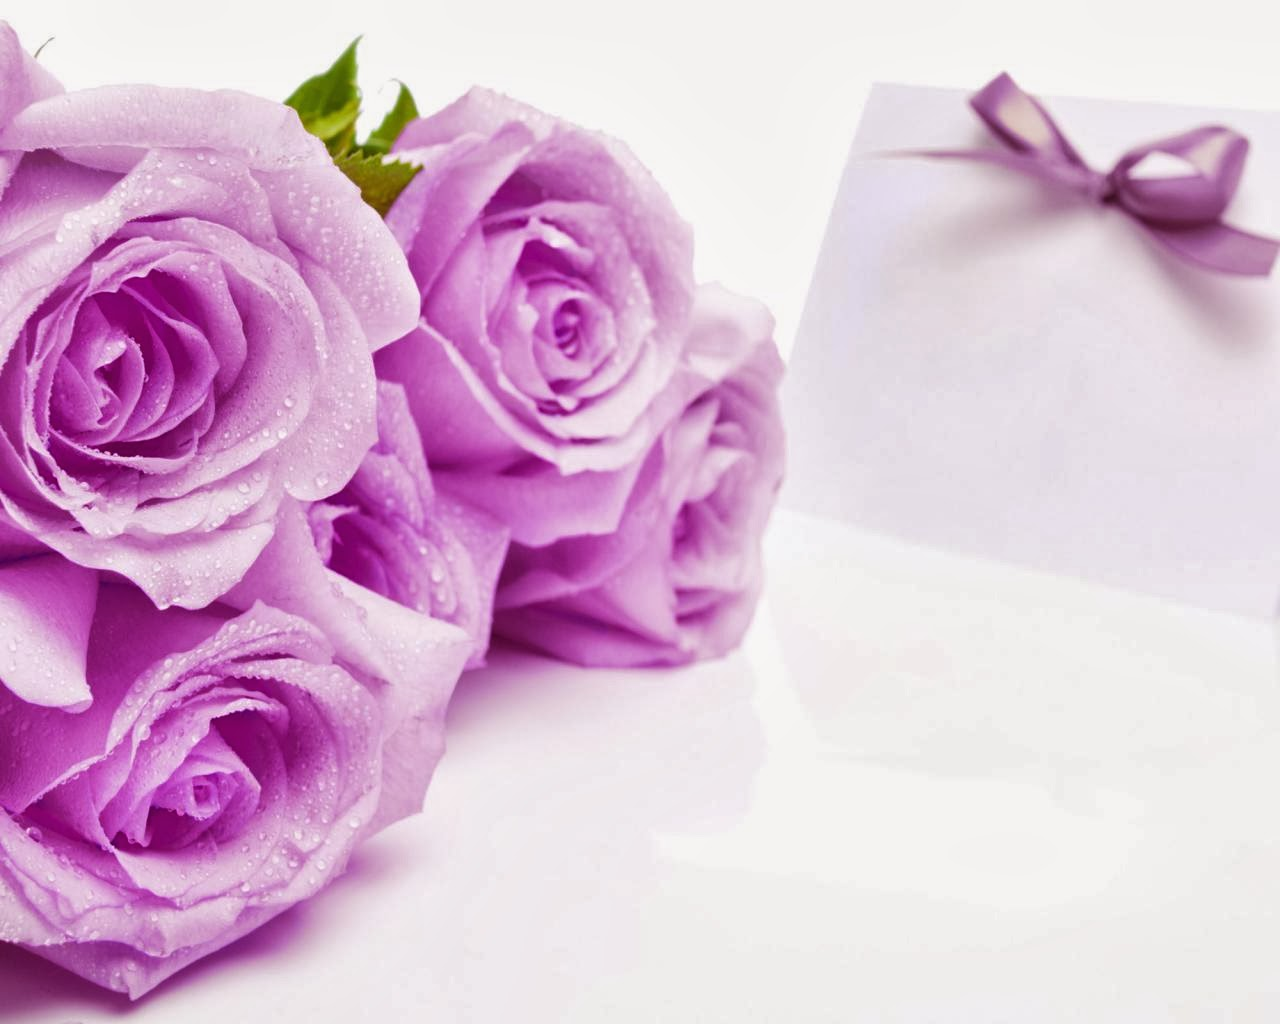 Happy Rose Day 7th February 2014 Hd Images And Pics Happiness Style